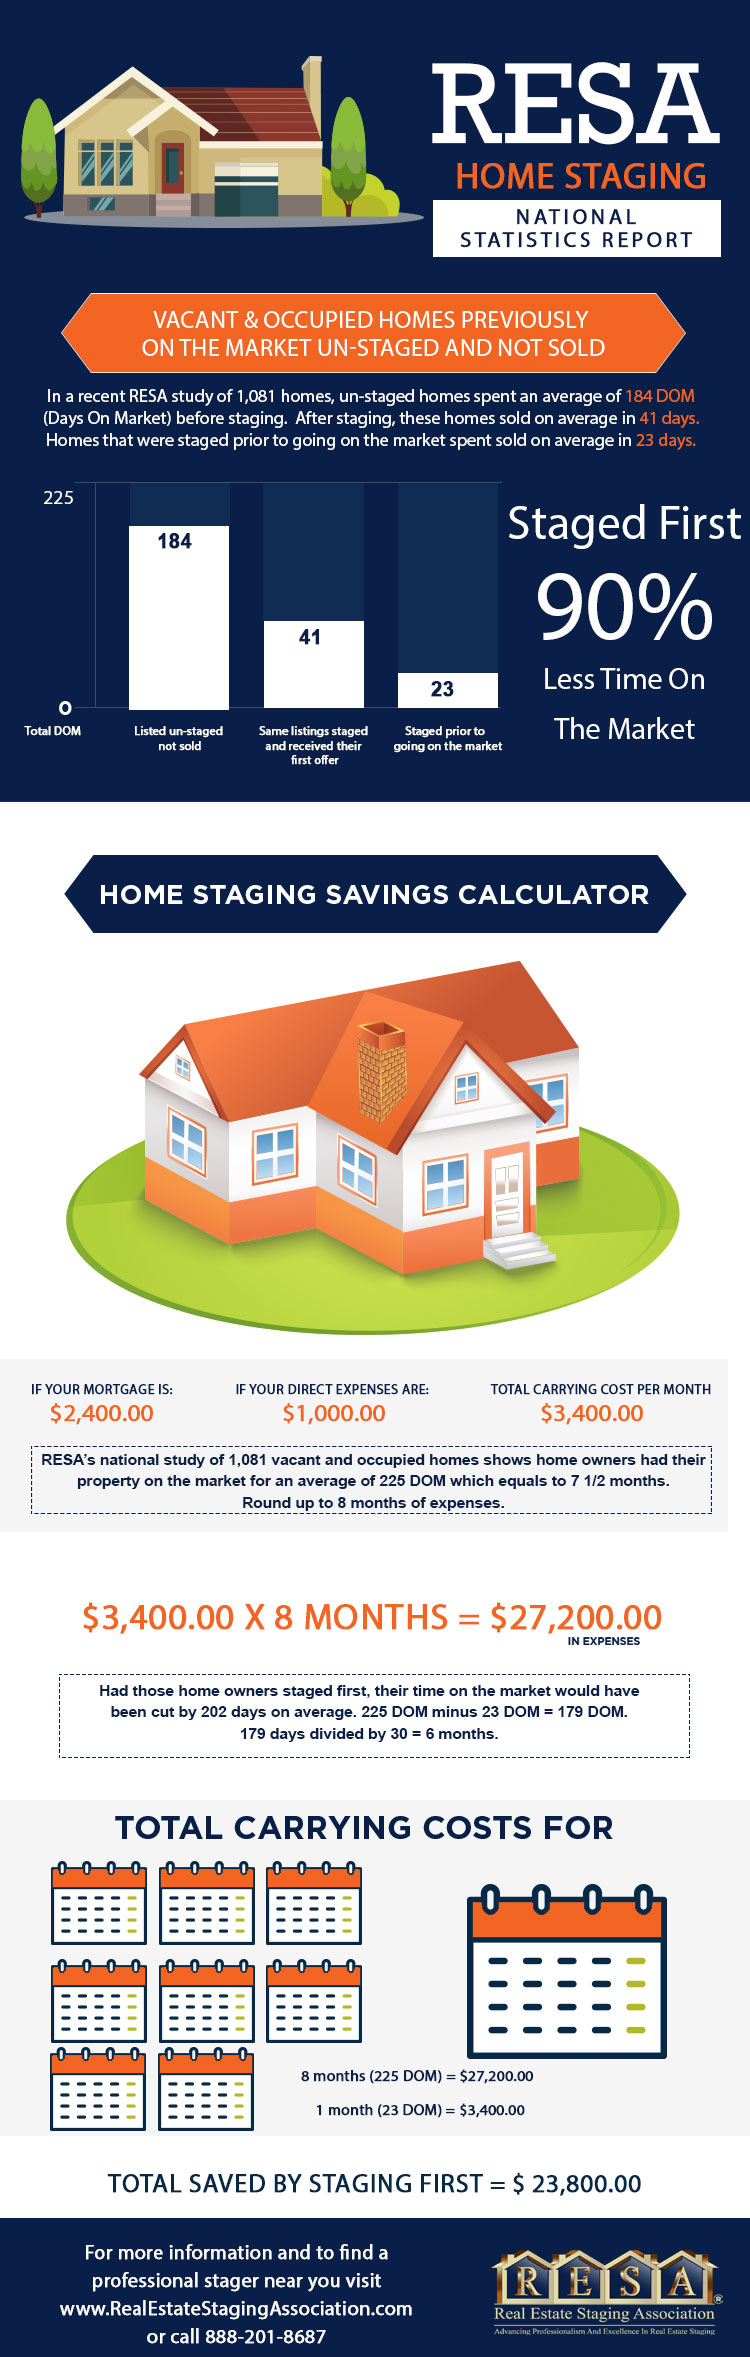 resa-home-staging-statistics